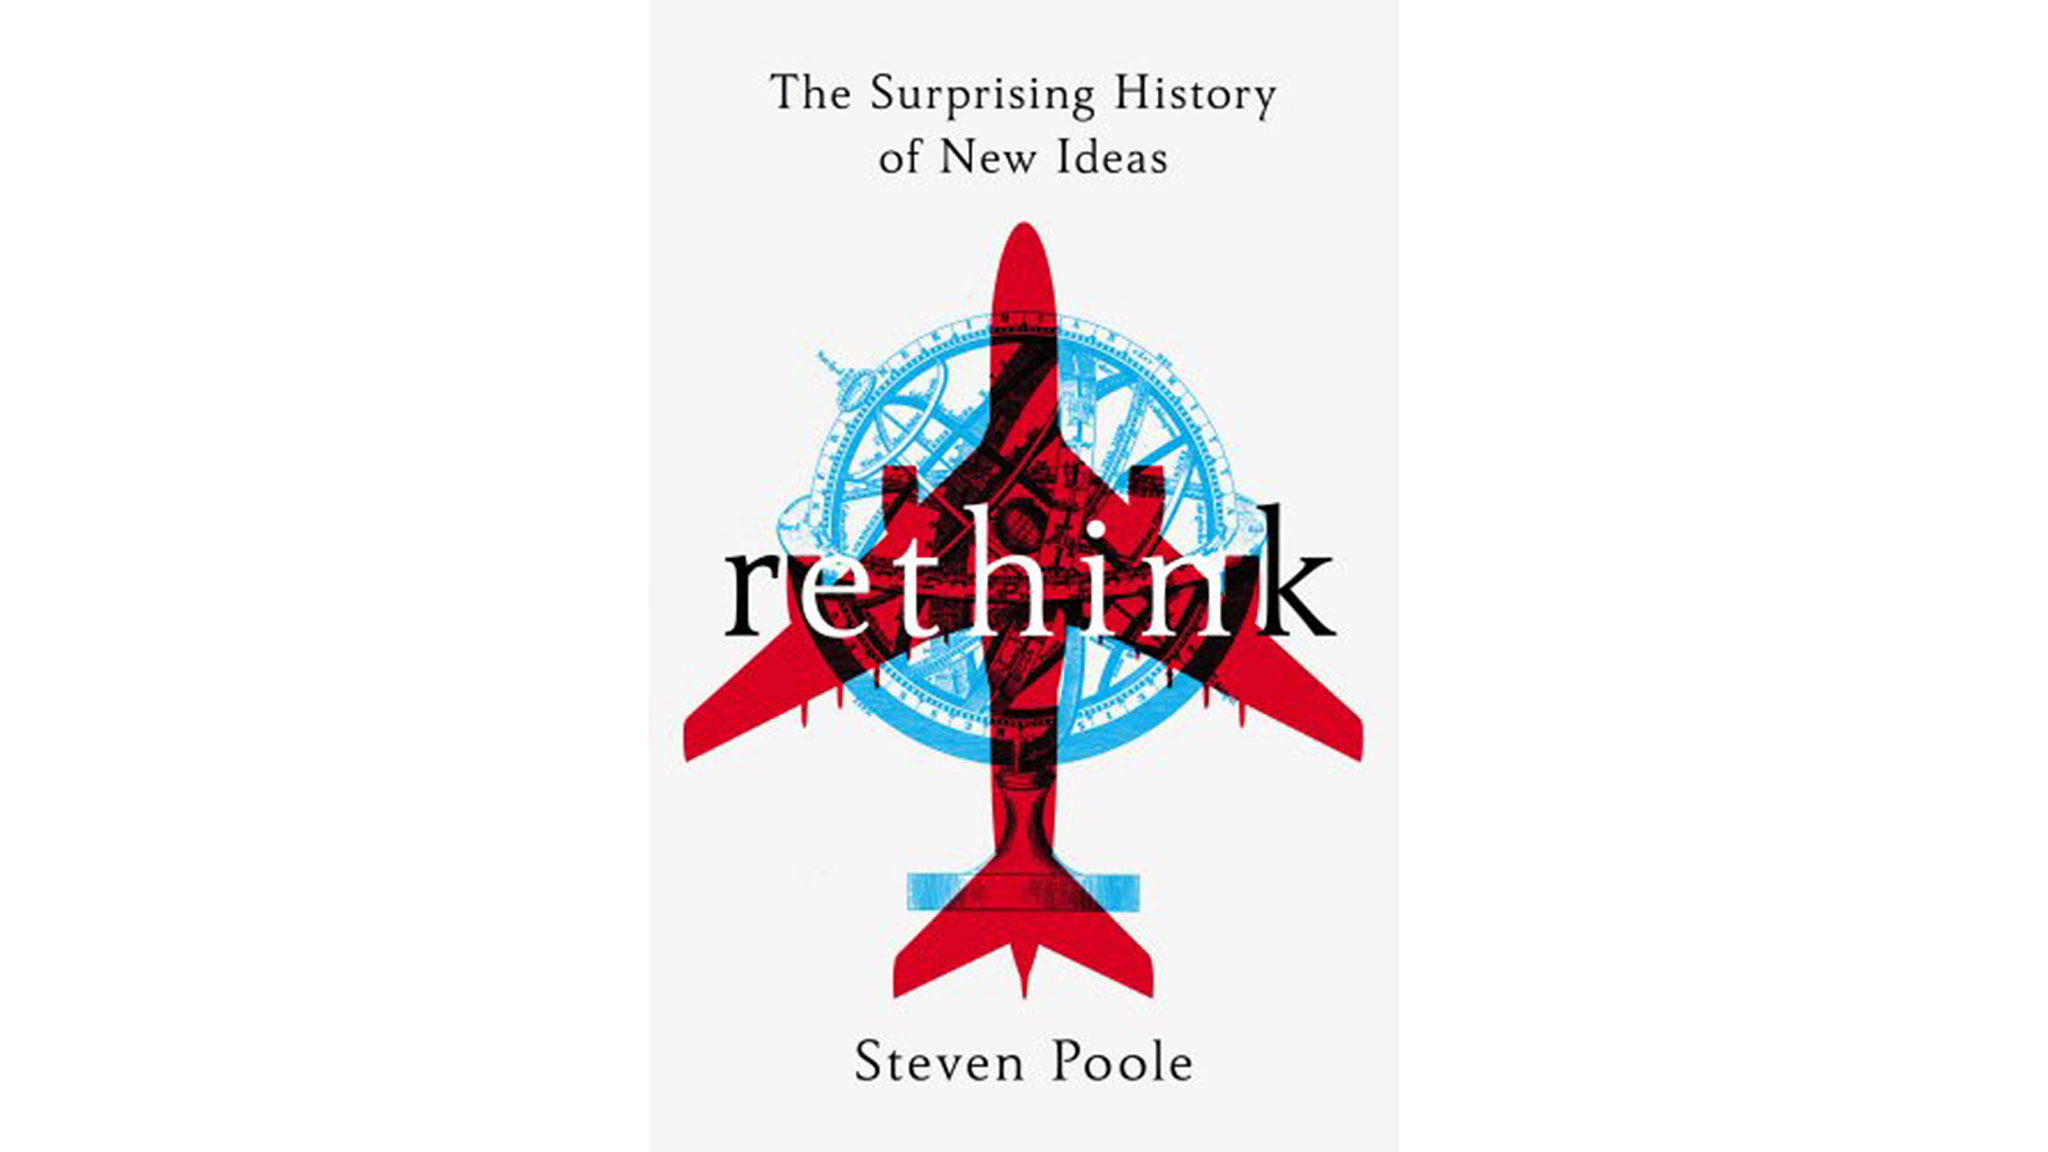 Stevenphan s ideas an ideabook by stevenphan -  Rethink The Surprising History Of New Ideas By Steven Poole